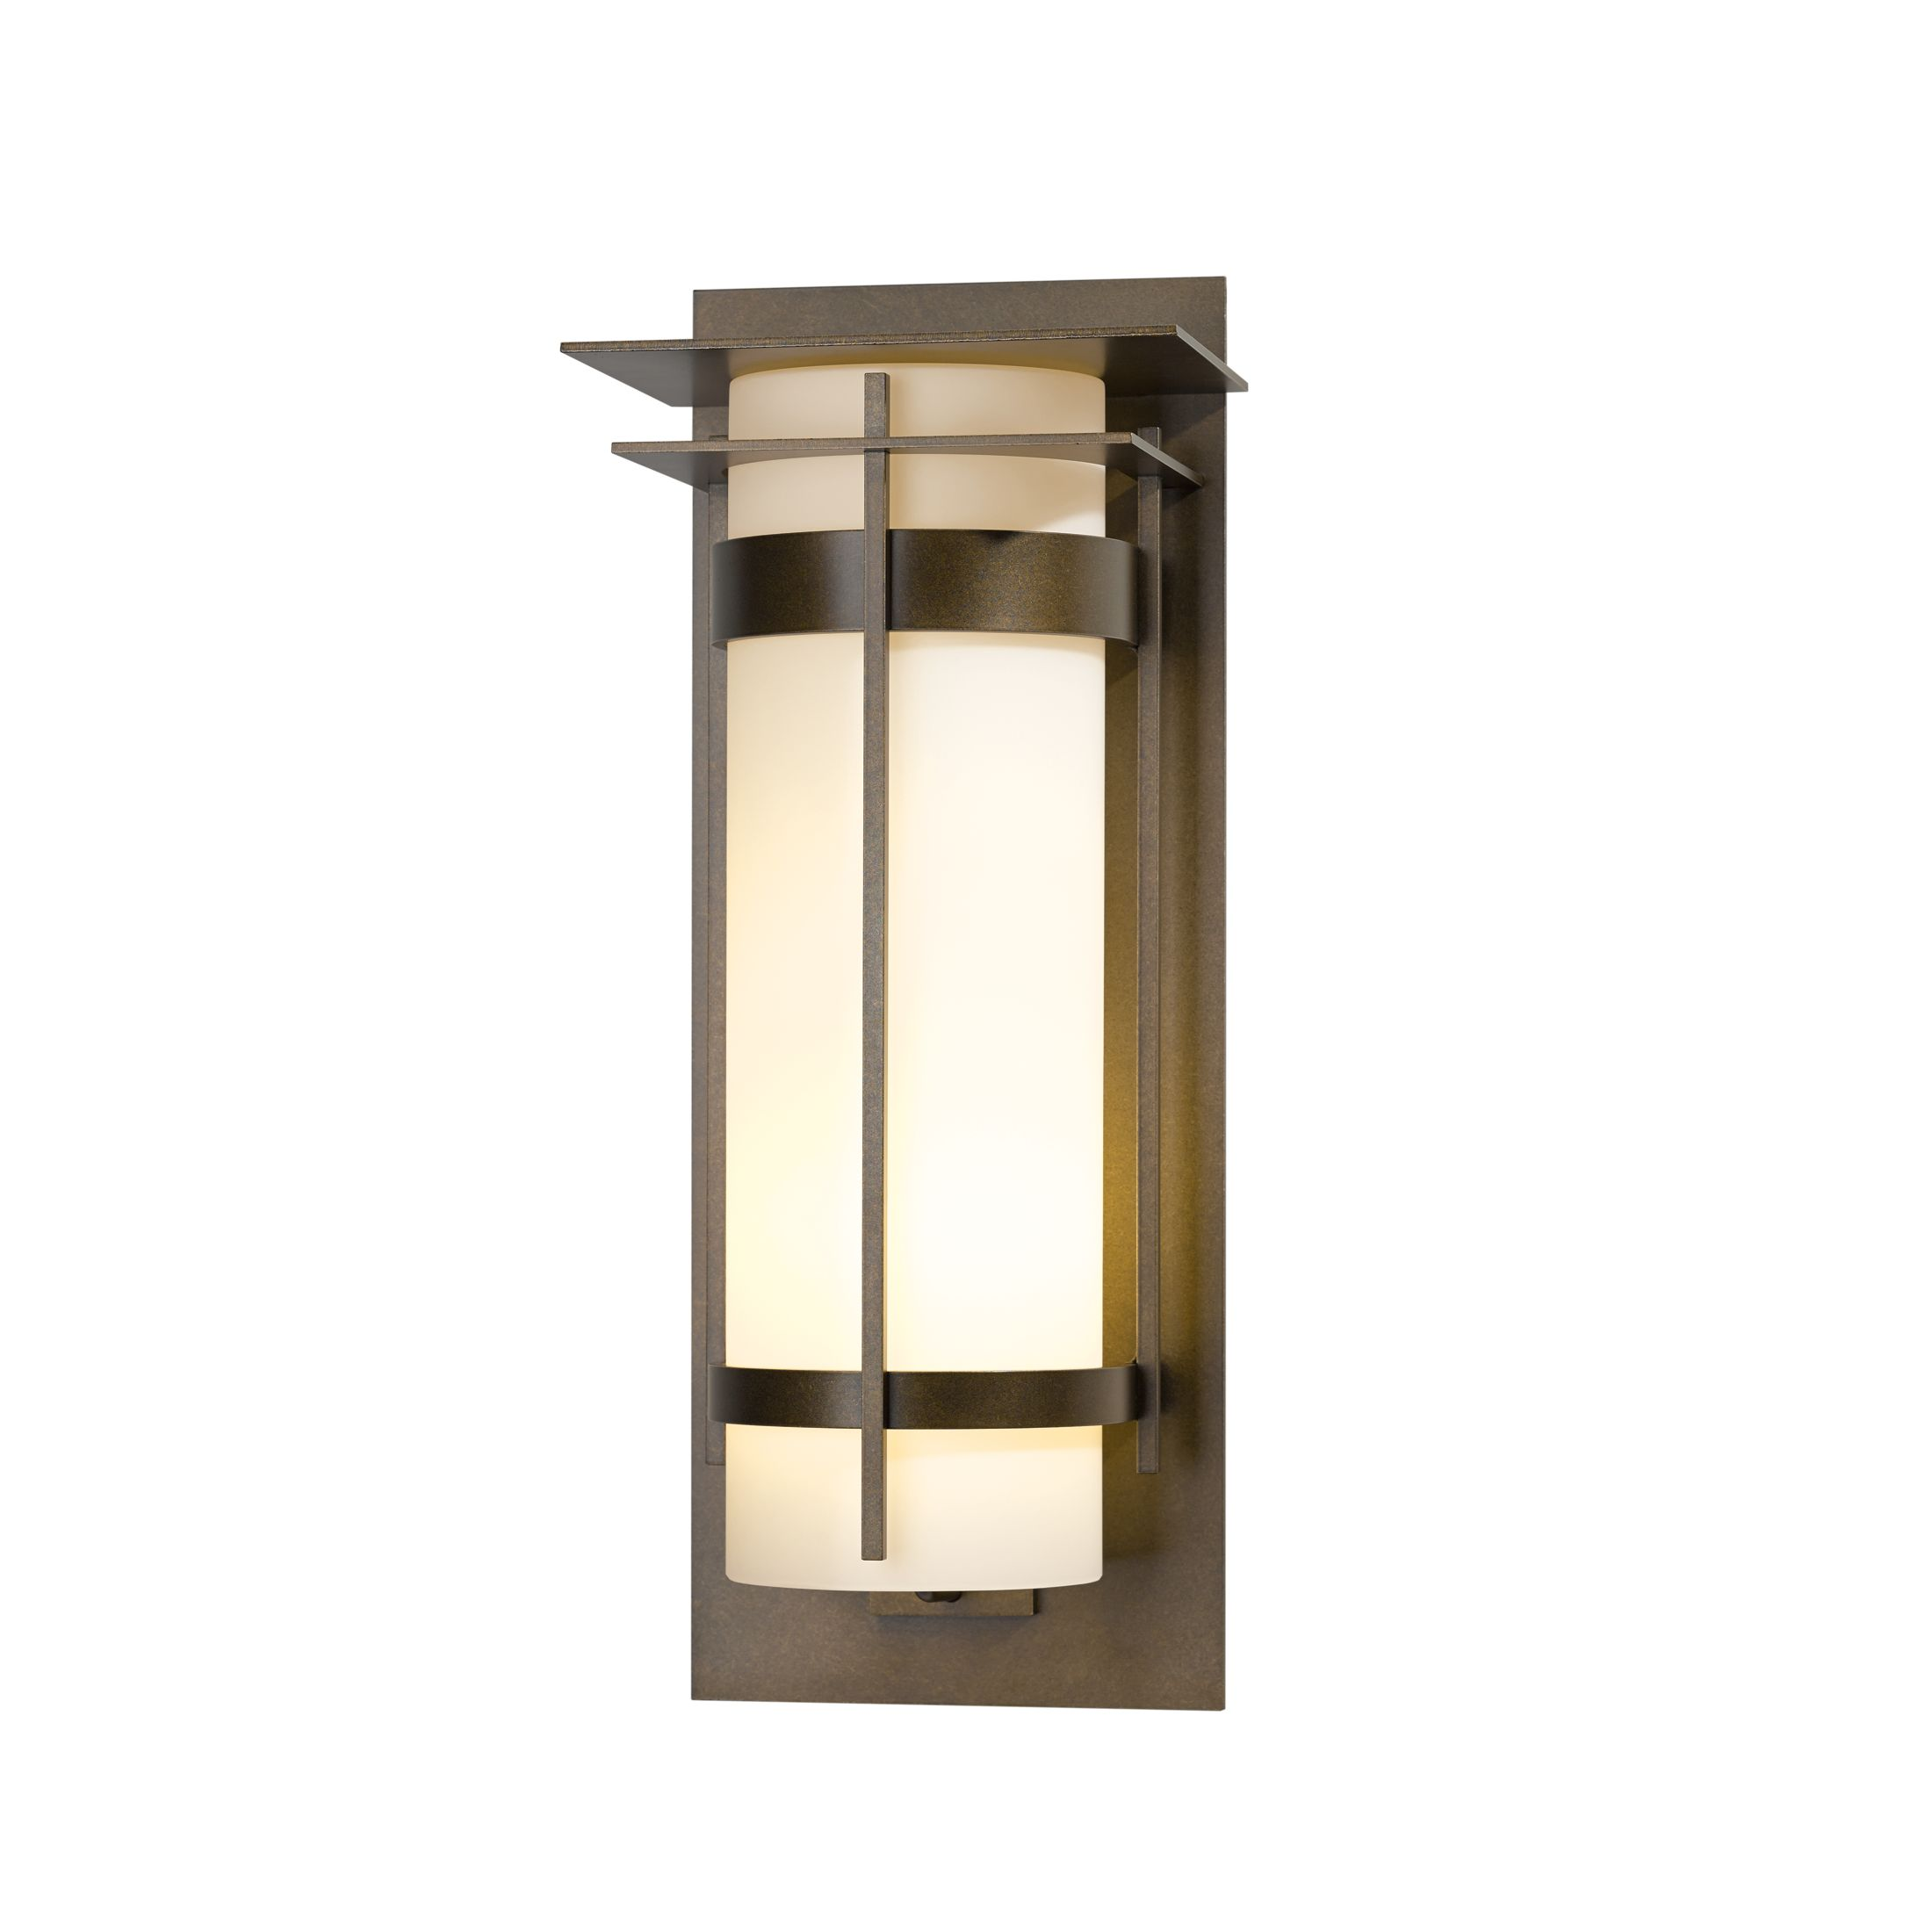 Thumbnail for Banded with Top Plate Extra Large Interior Sconce